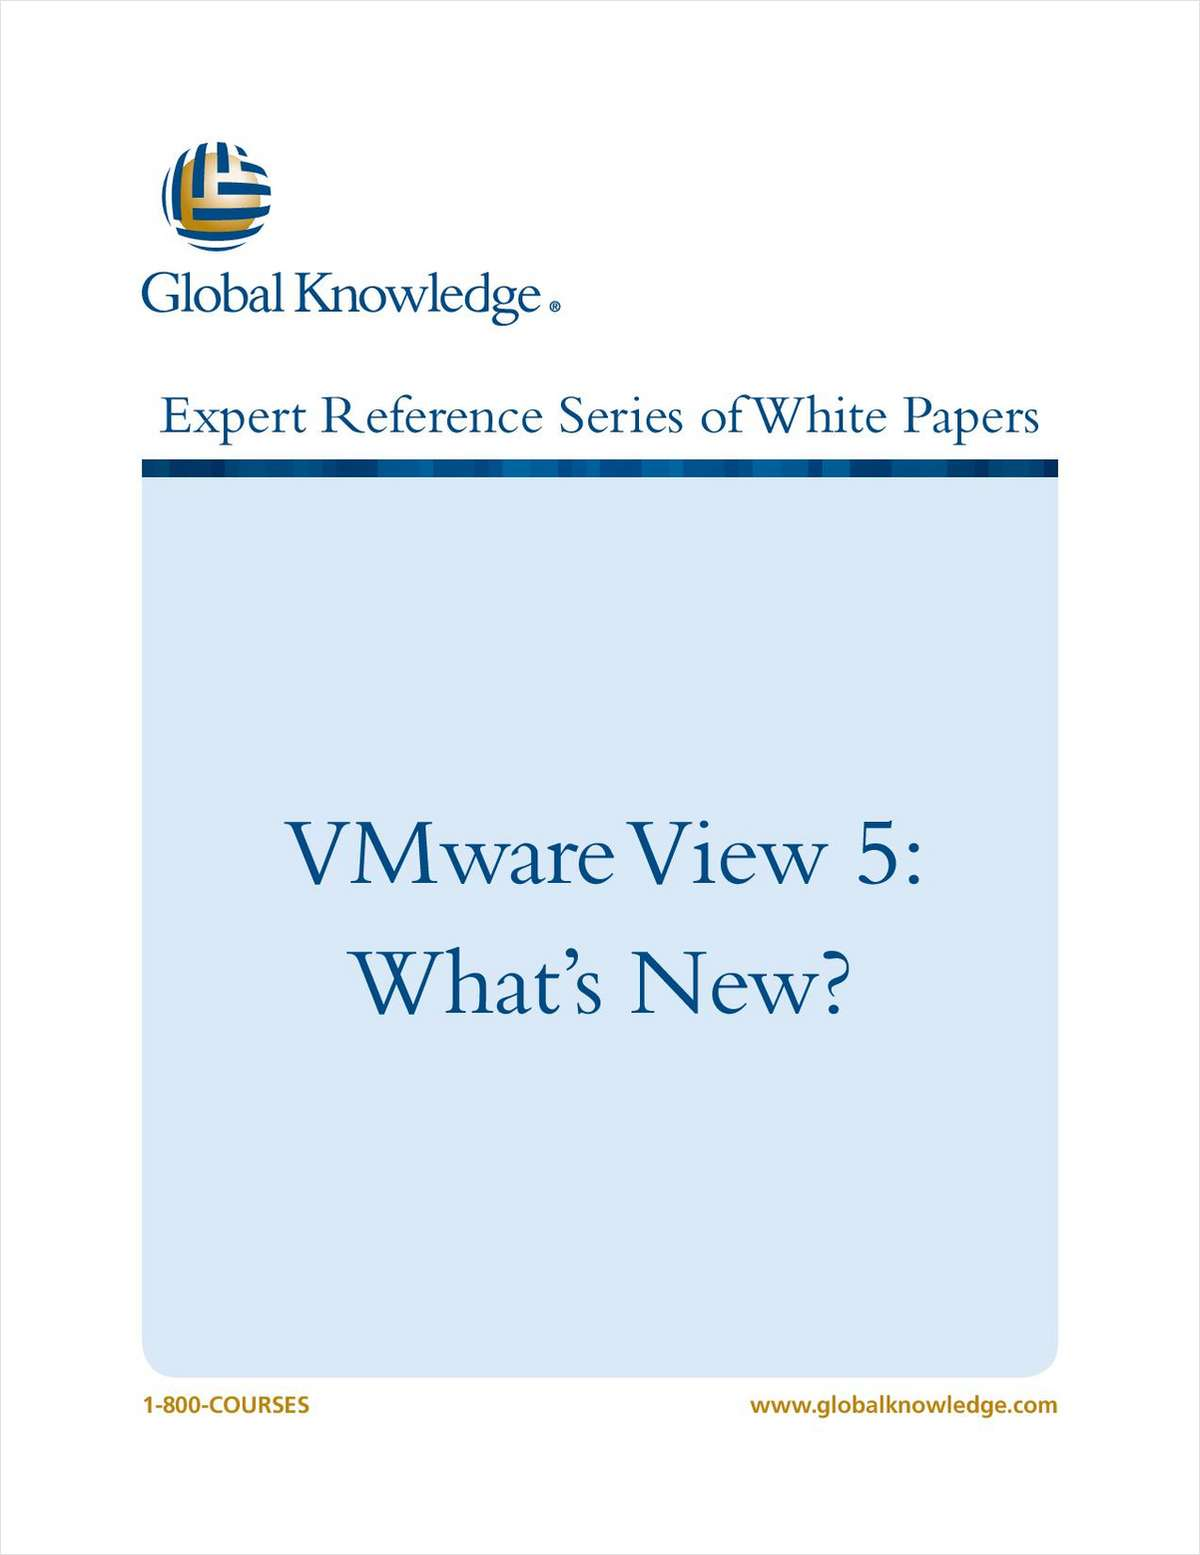 VMware View 5: What's New?